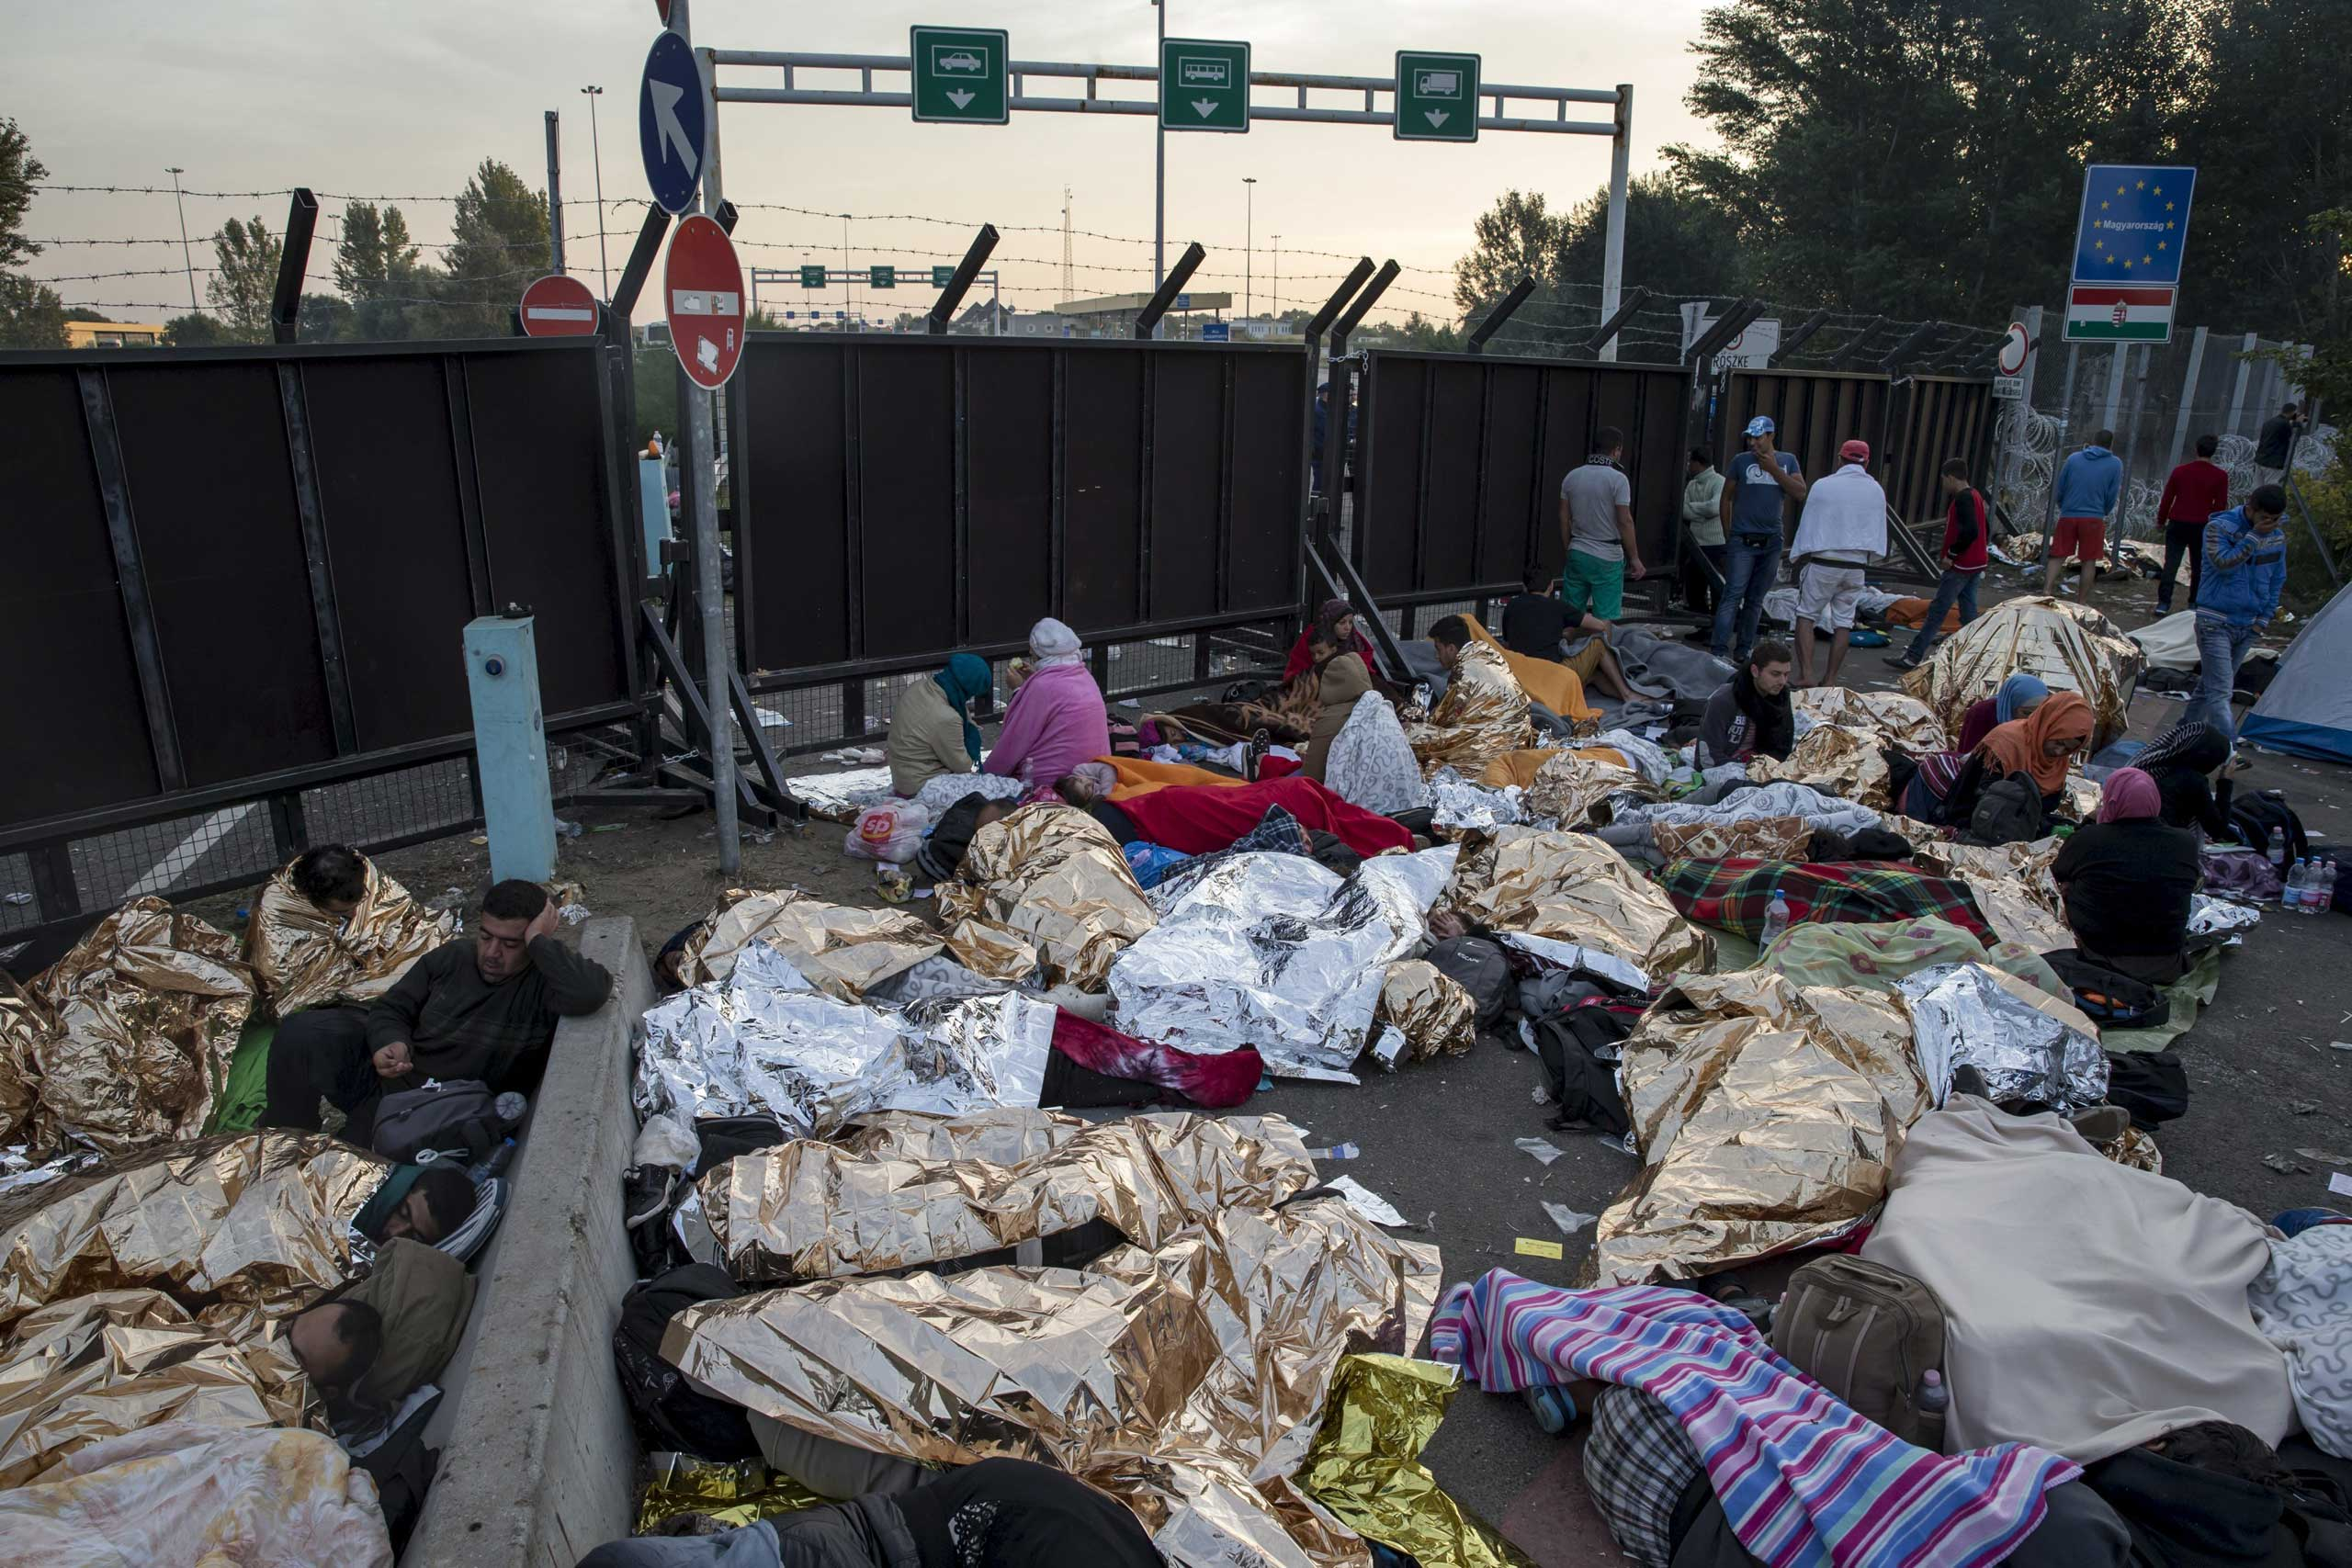 Migrants sleep on a highway in front of a barrier at the border with Hungary near the village of Horgos, Serbia, on Sept. 16, 2015.